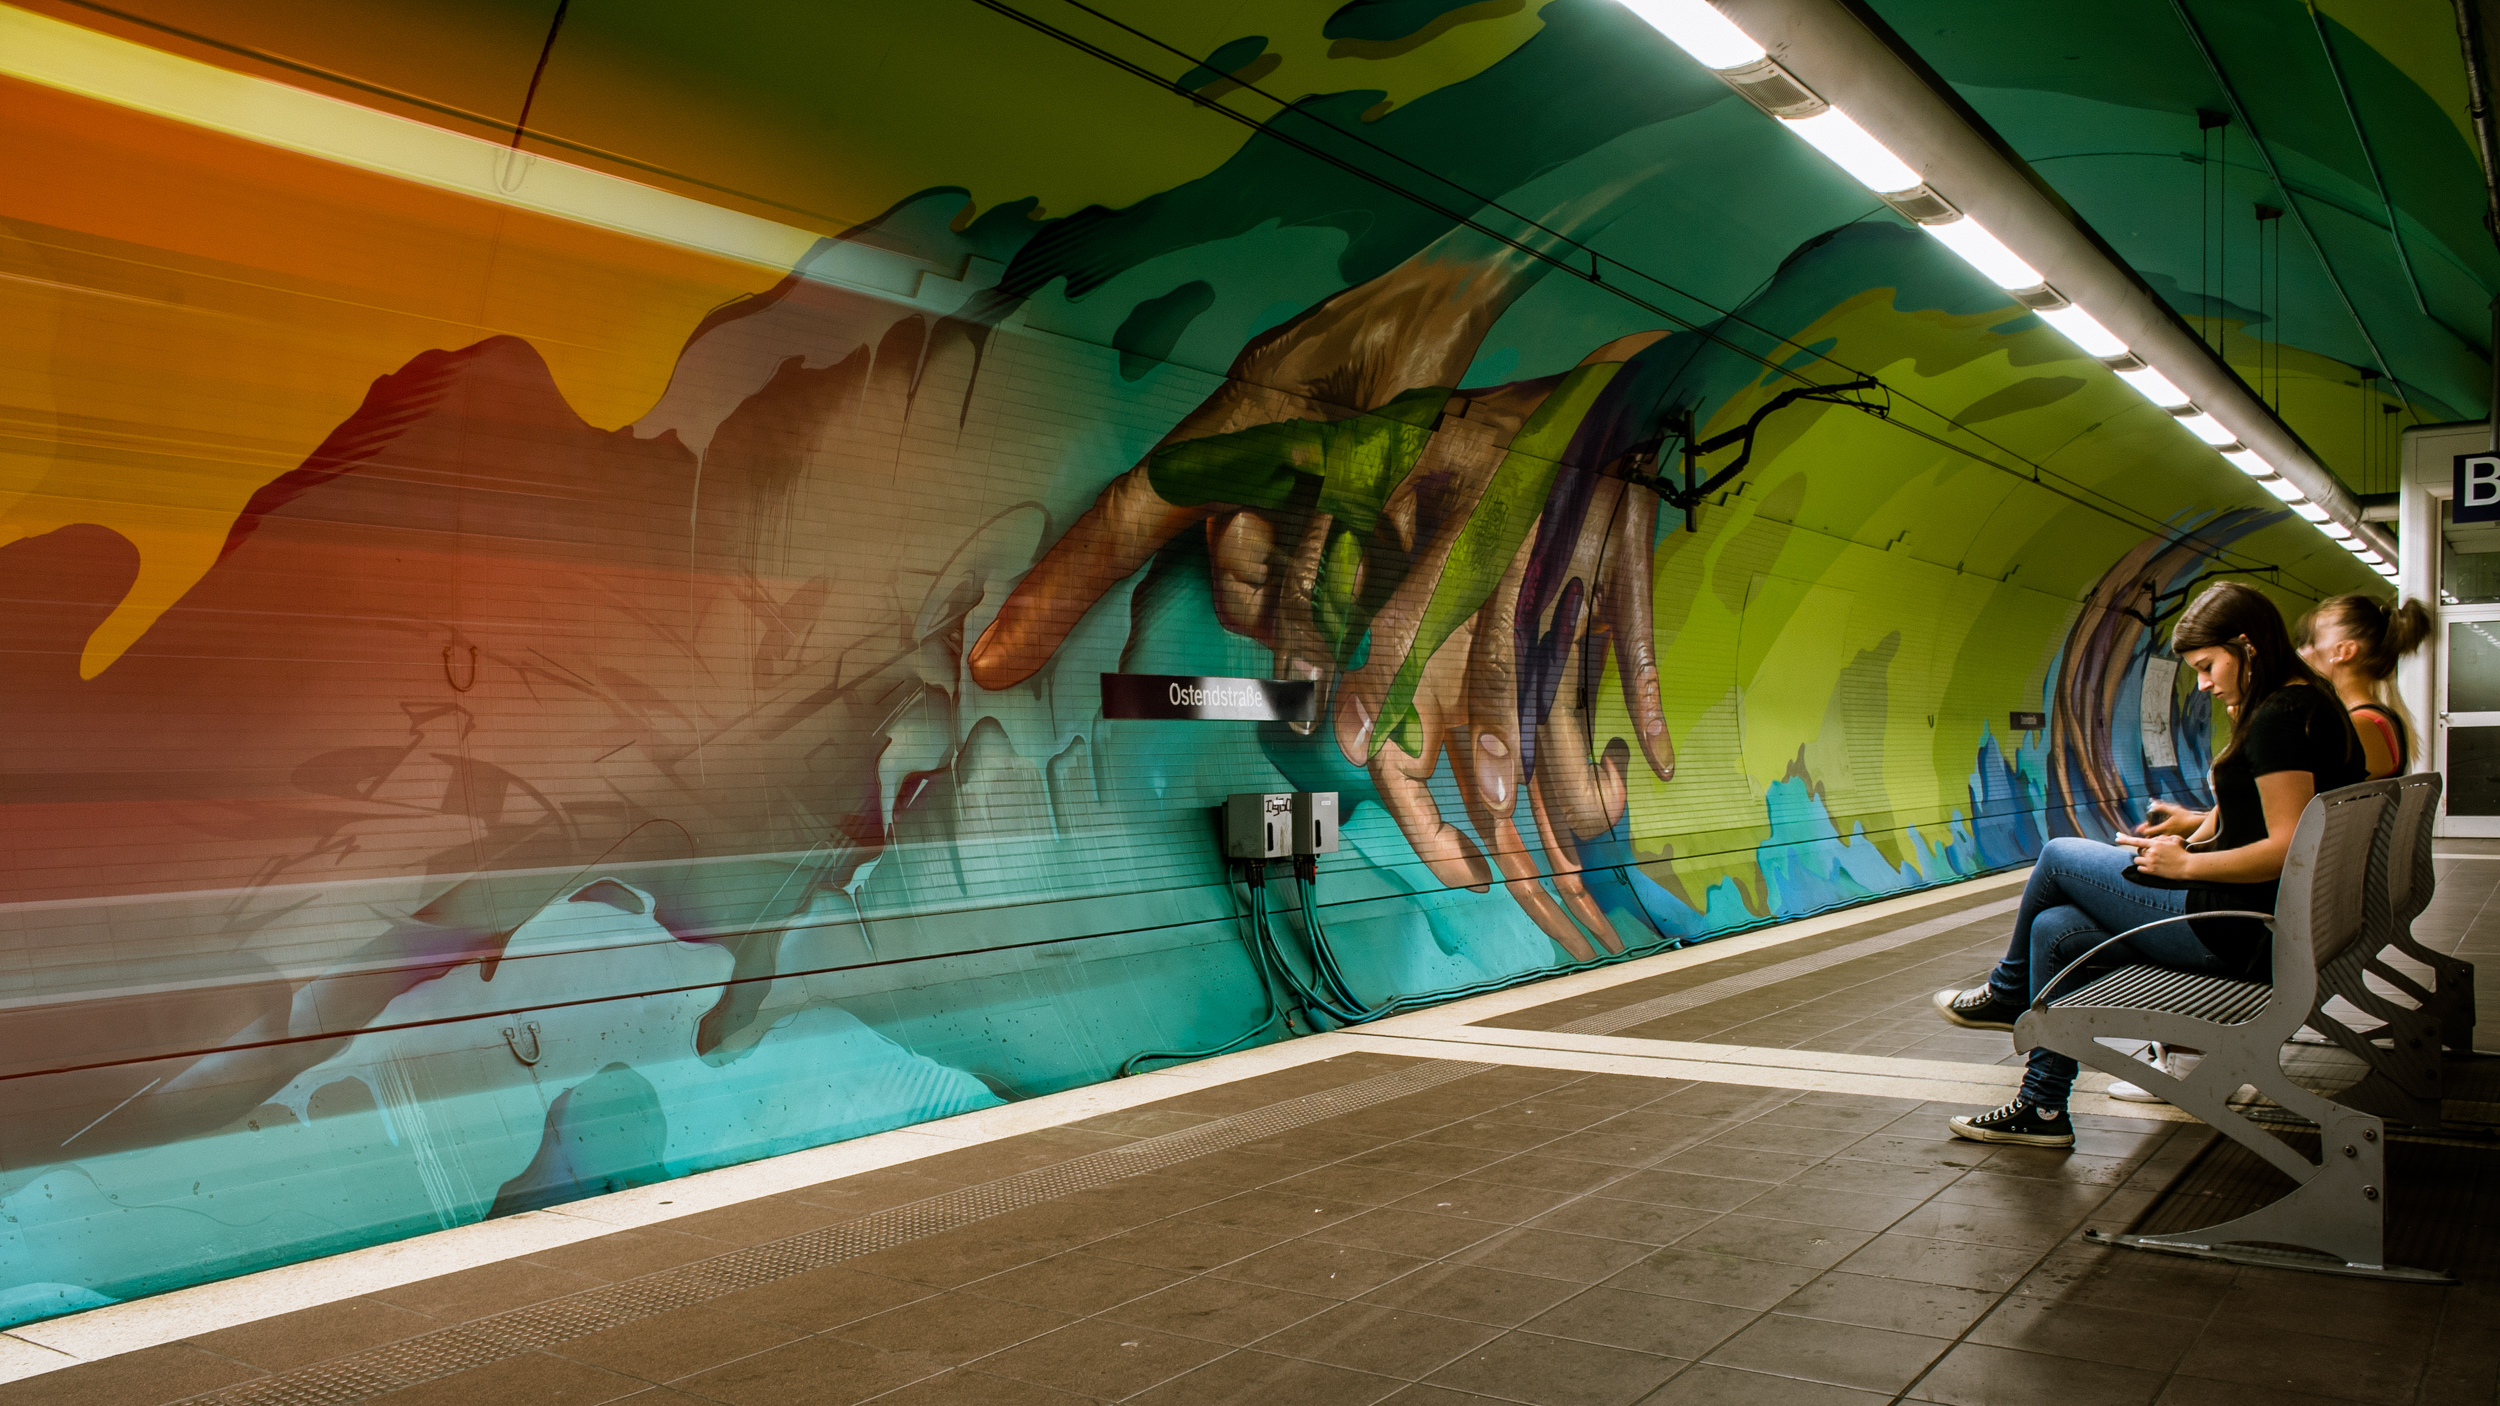 A work by Does - Ostendstrasse frankfurt germany tunnel 22